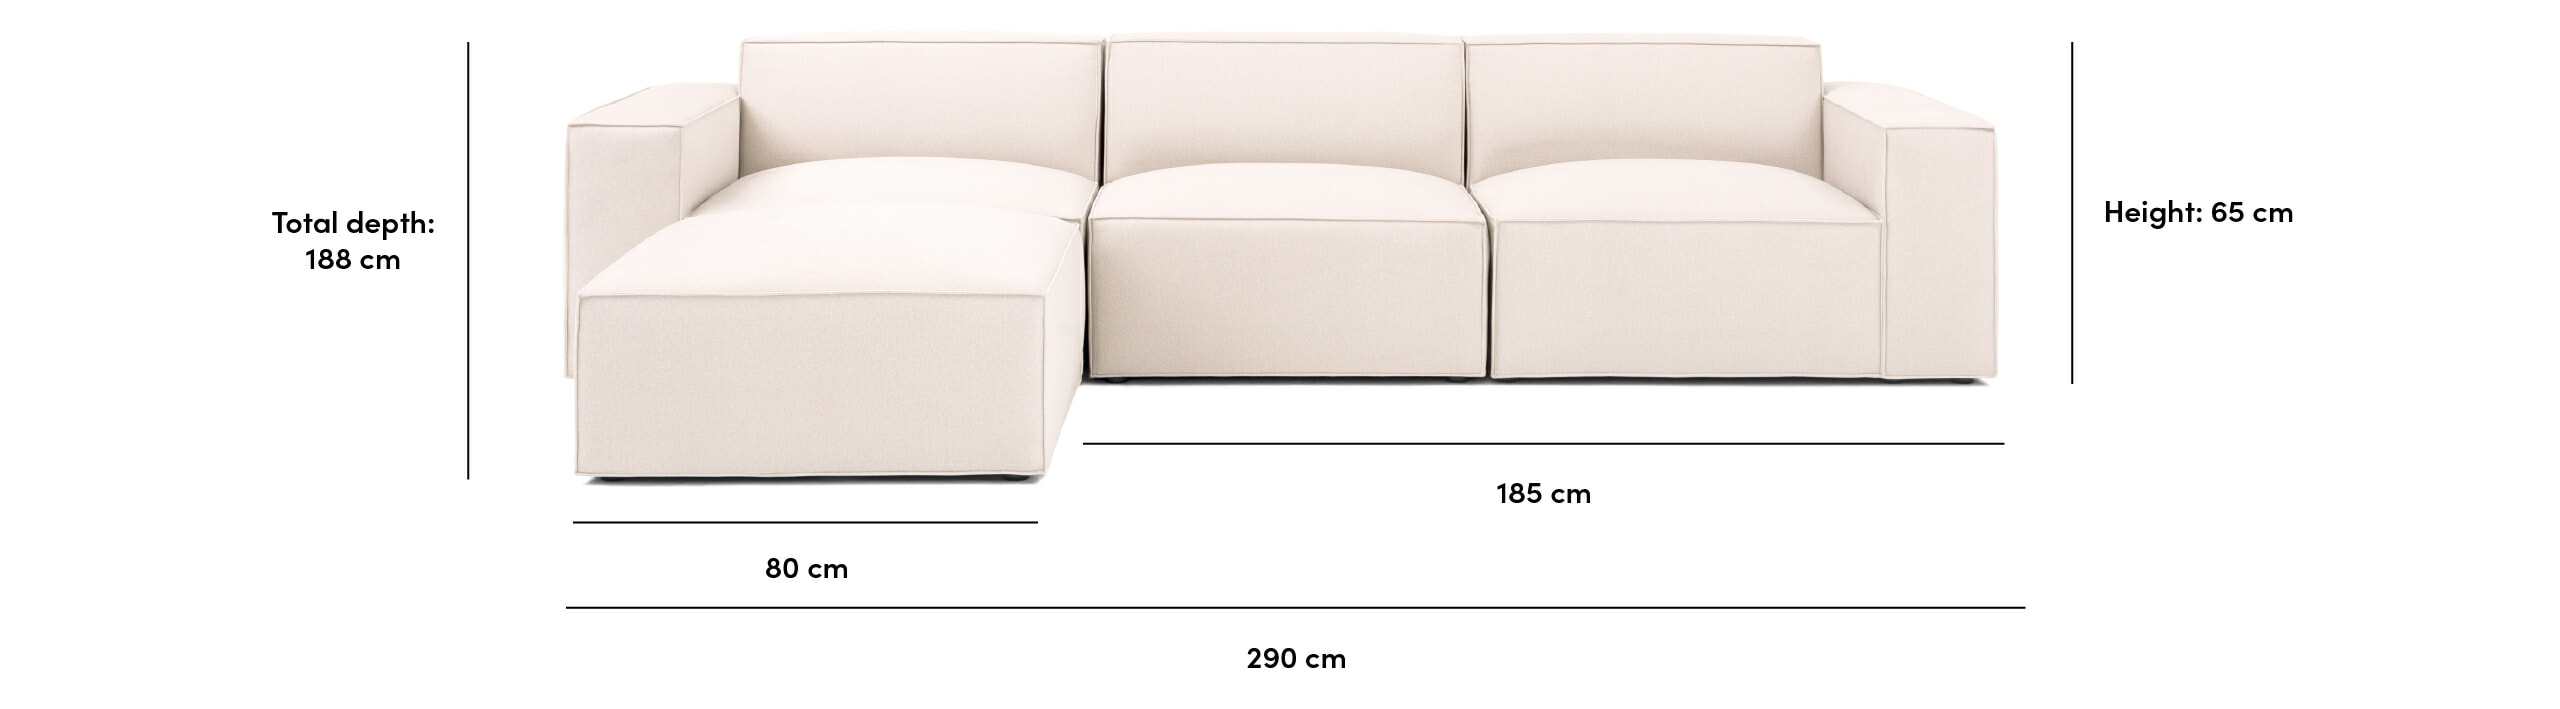 Noa Pacific sectional sofa dimensions